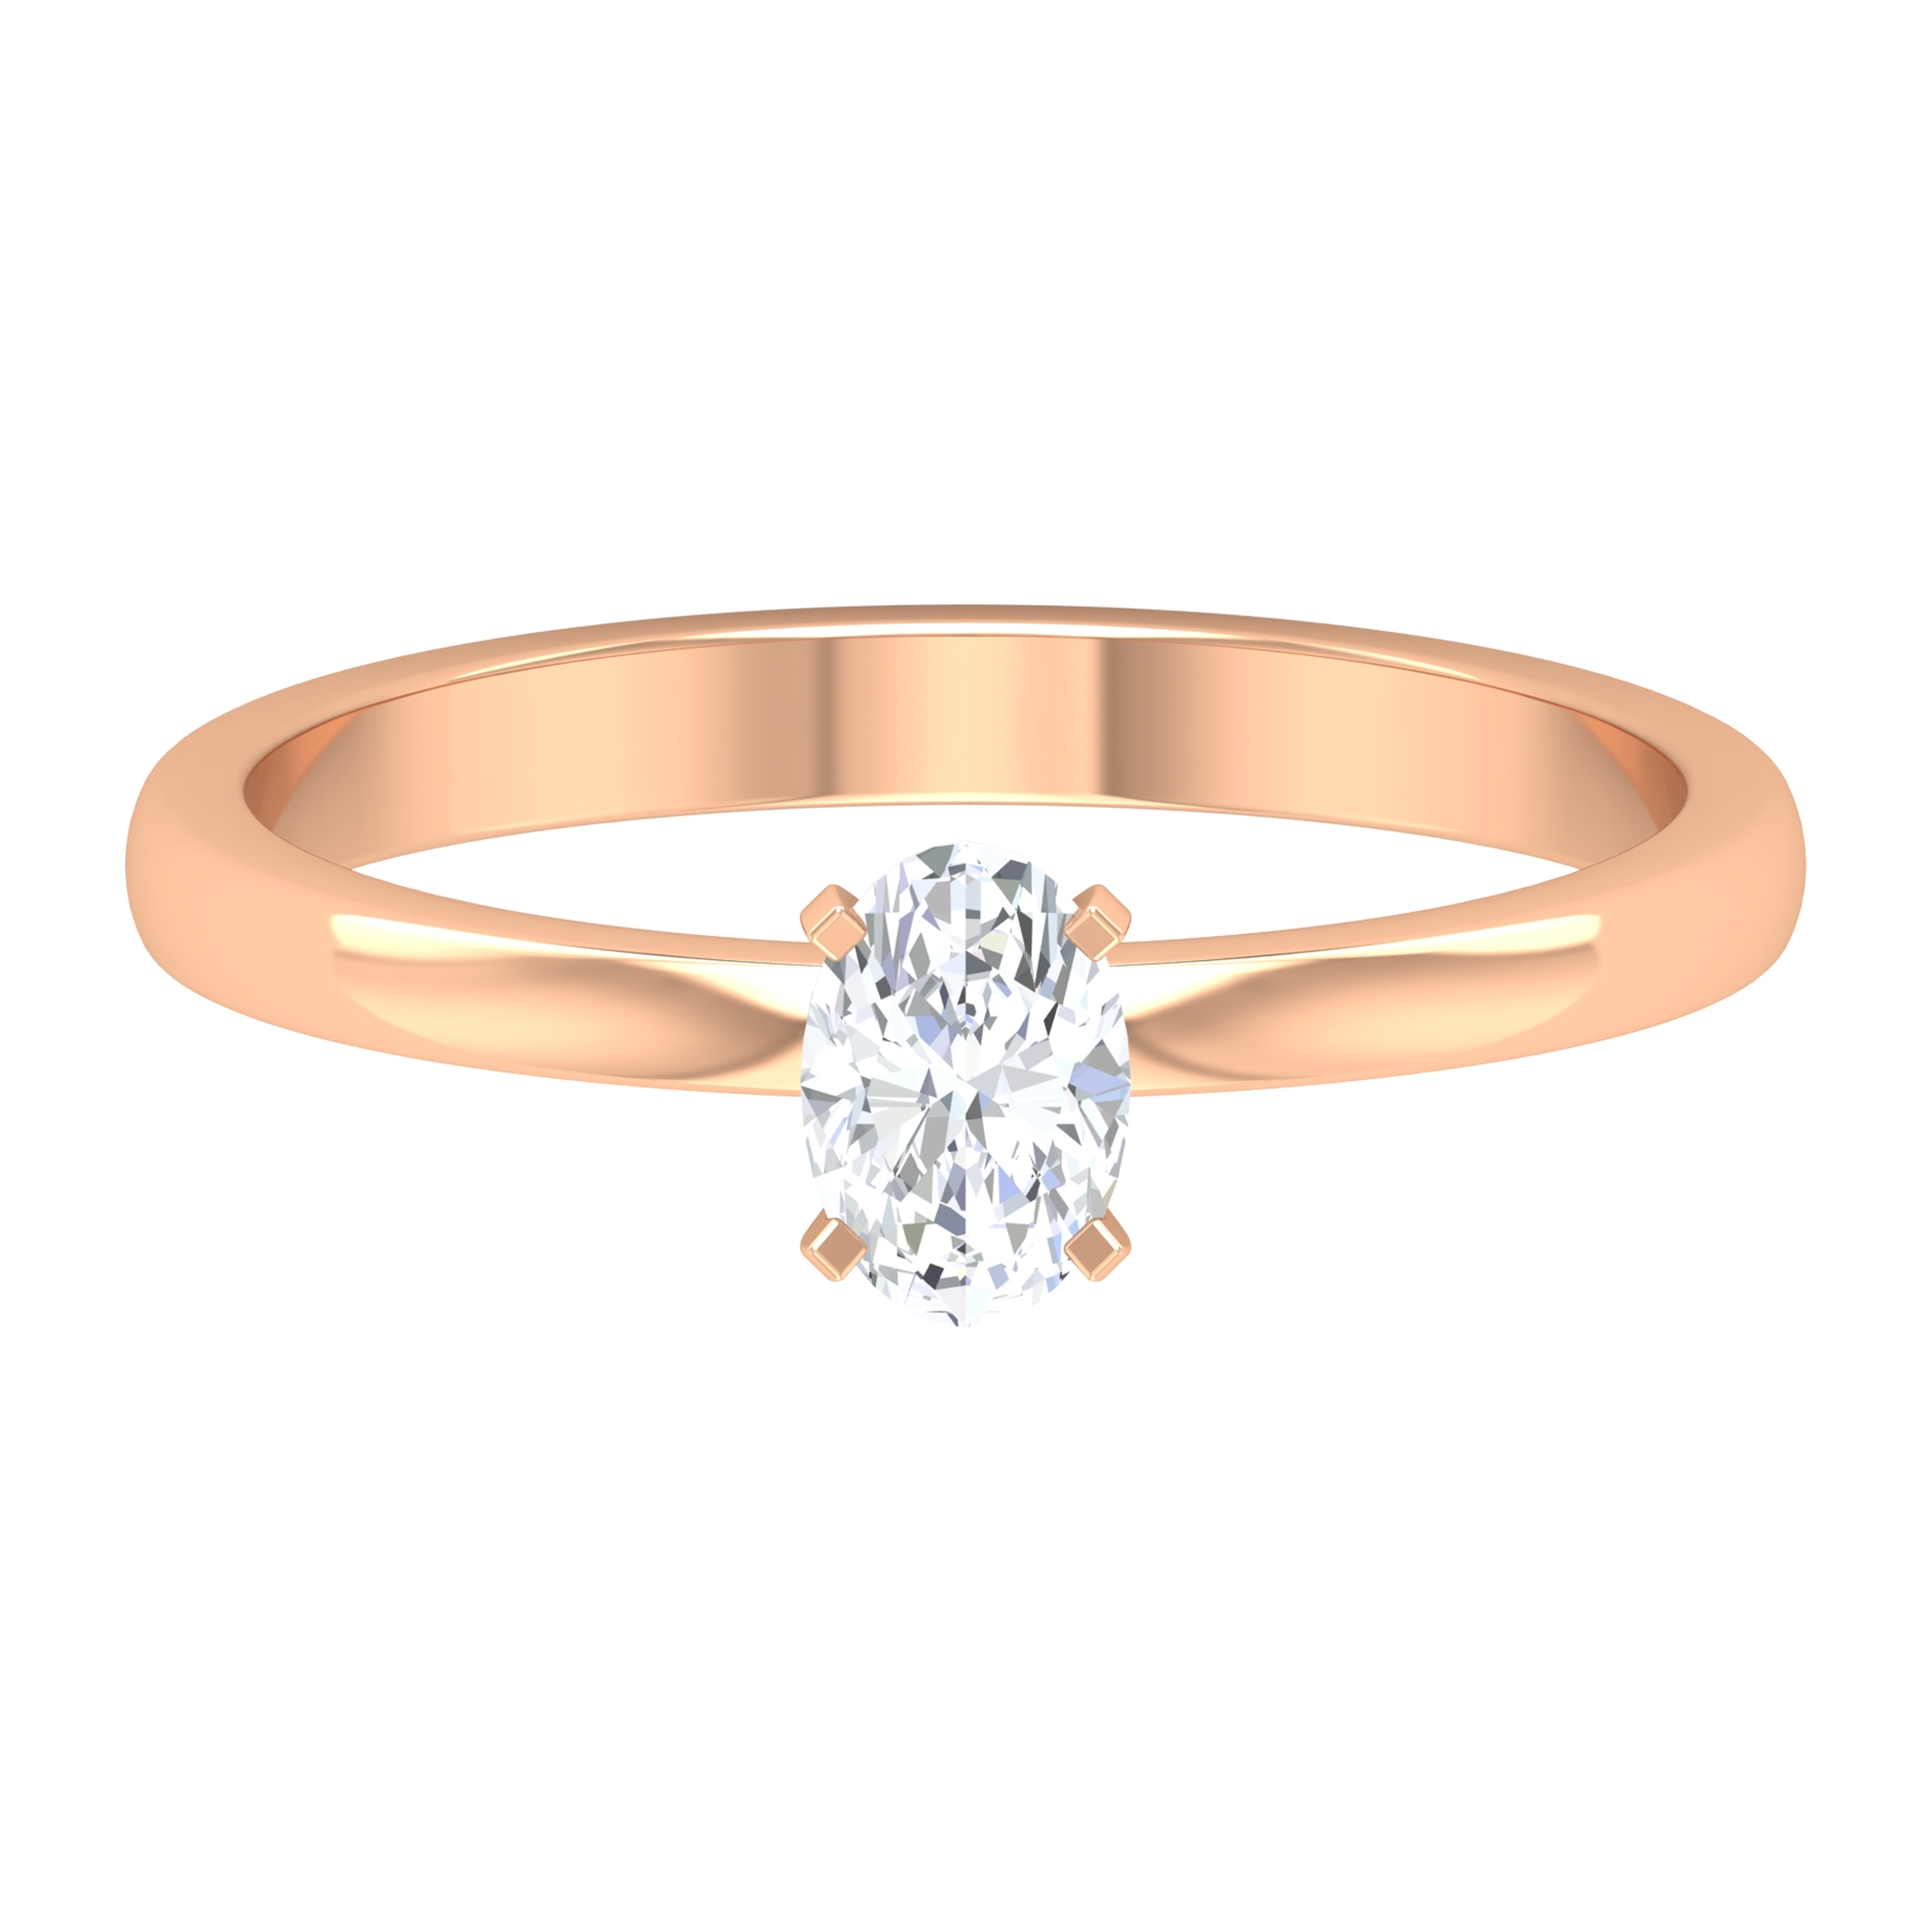 4X6 MM Oval Cut Solitaire Diamond Ring in Peg Head Set